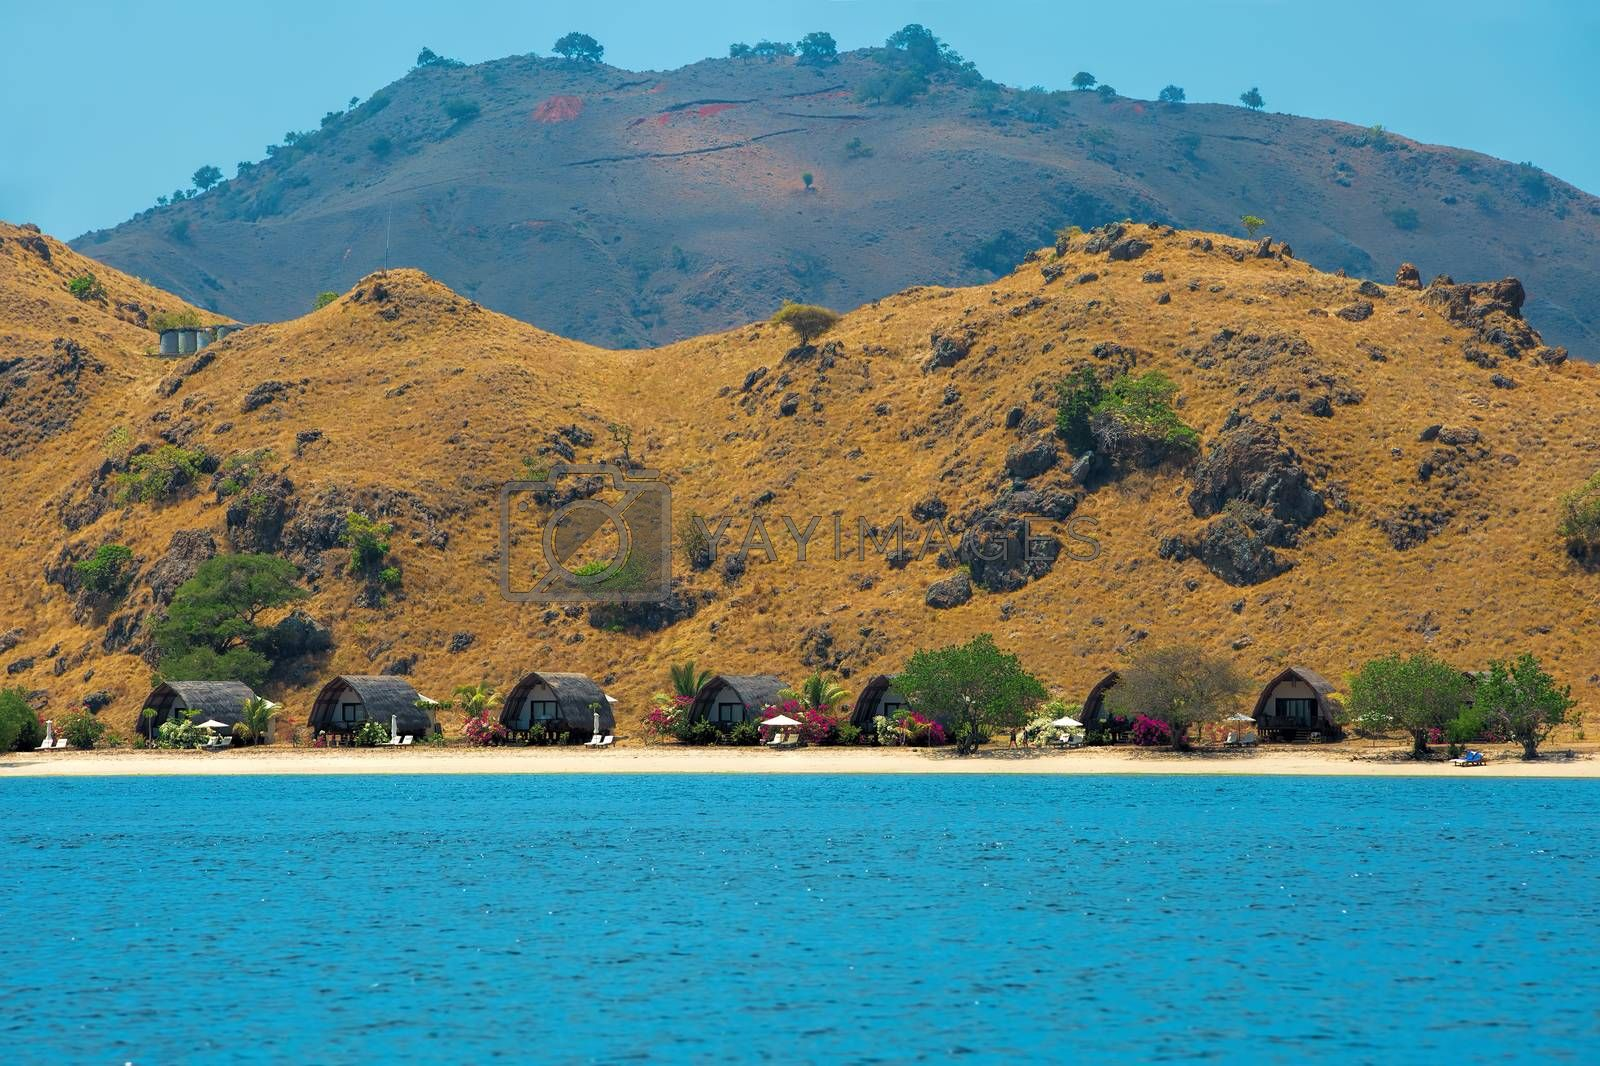 Bungalows on the beach in Komodo national park